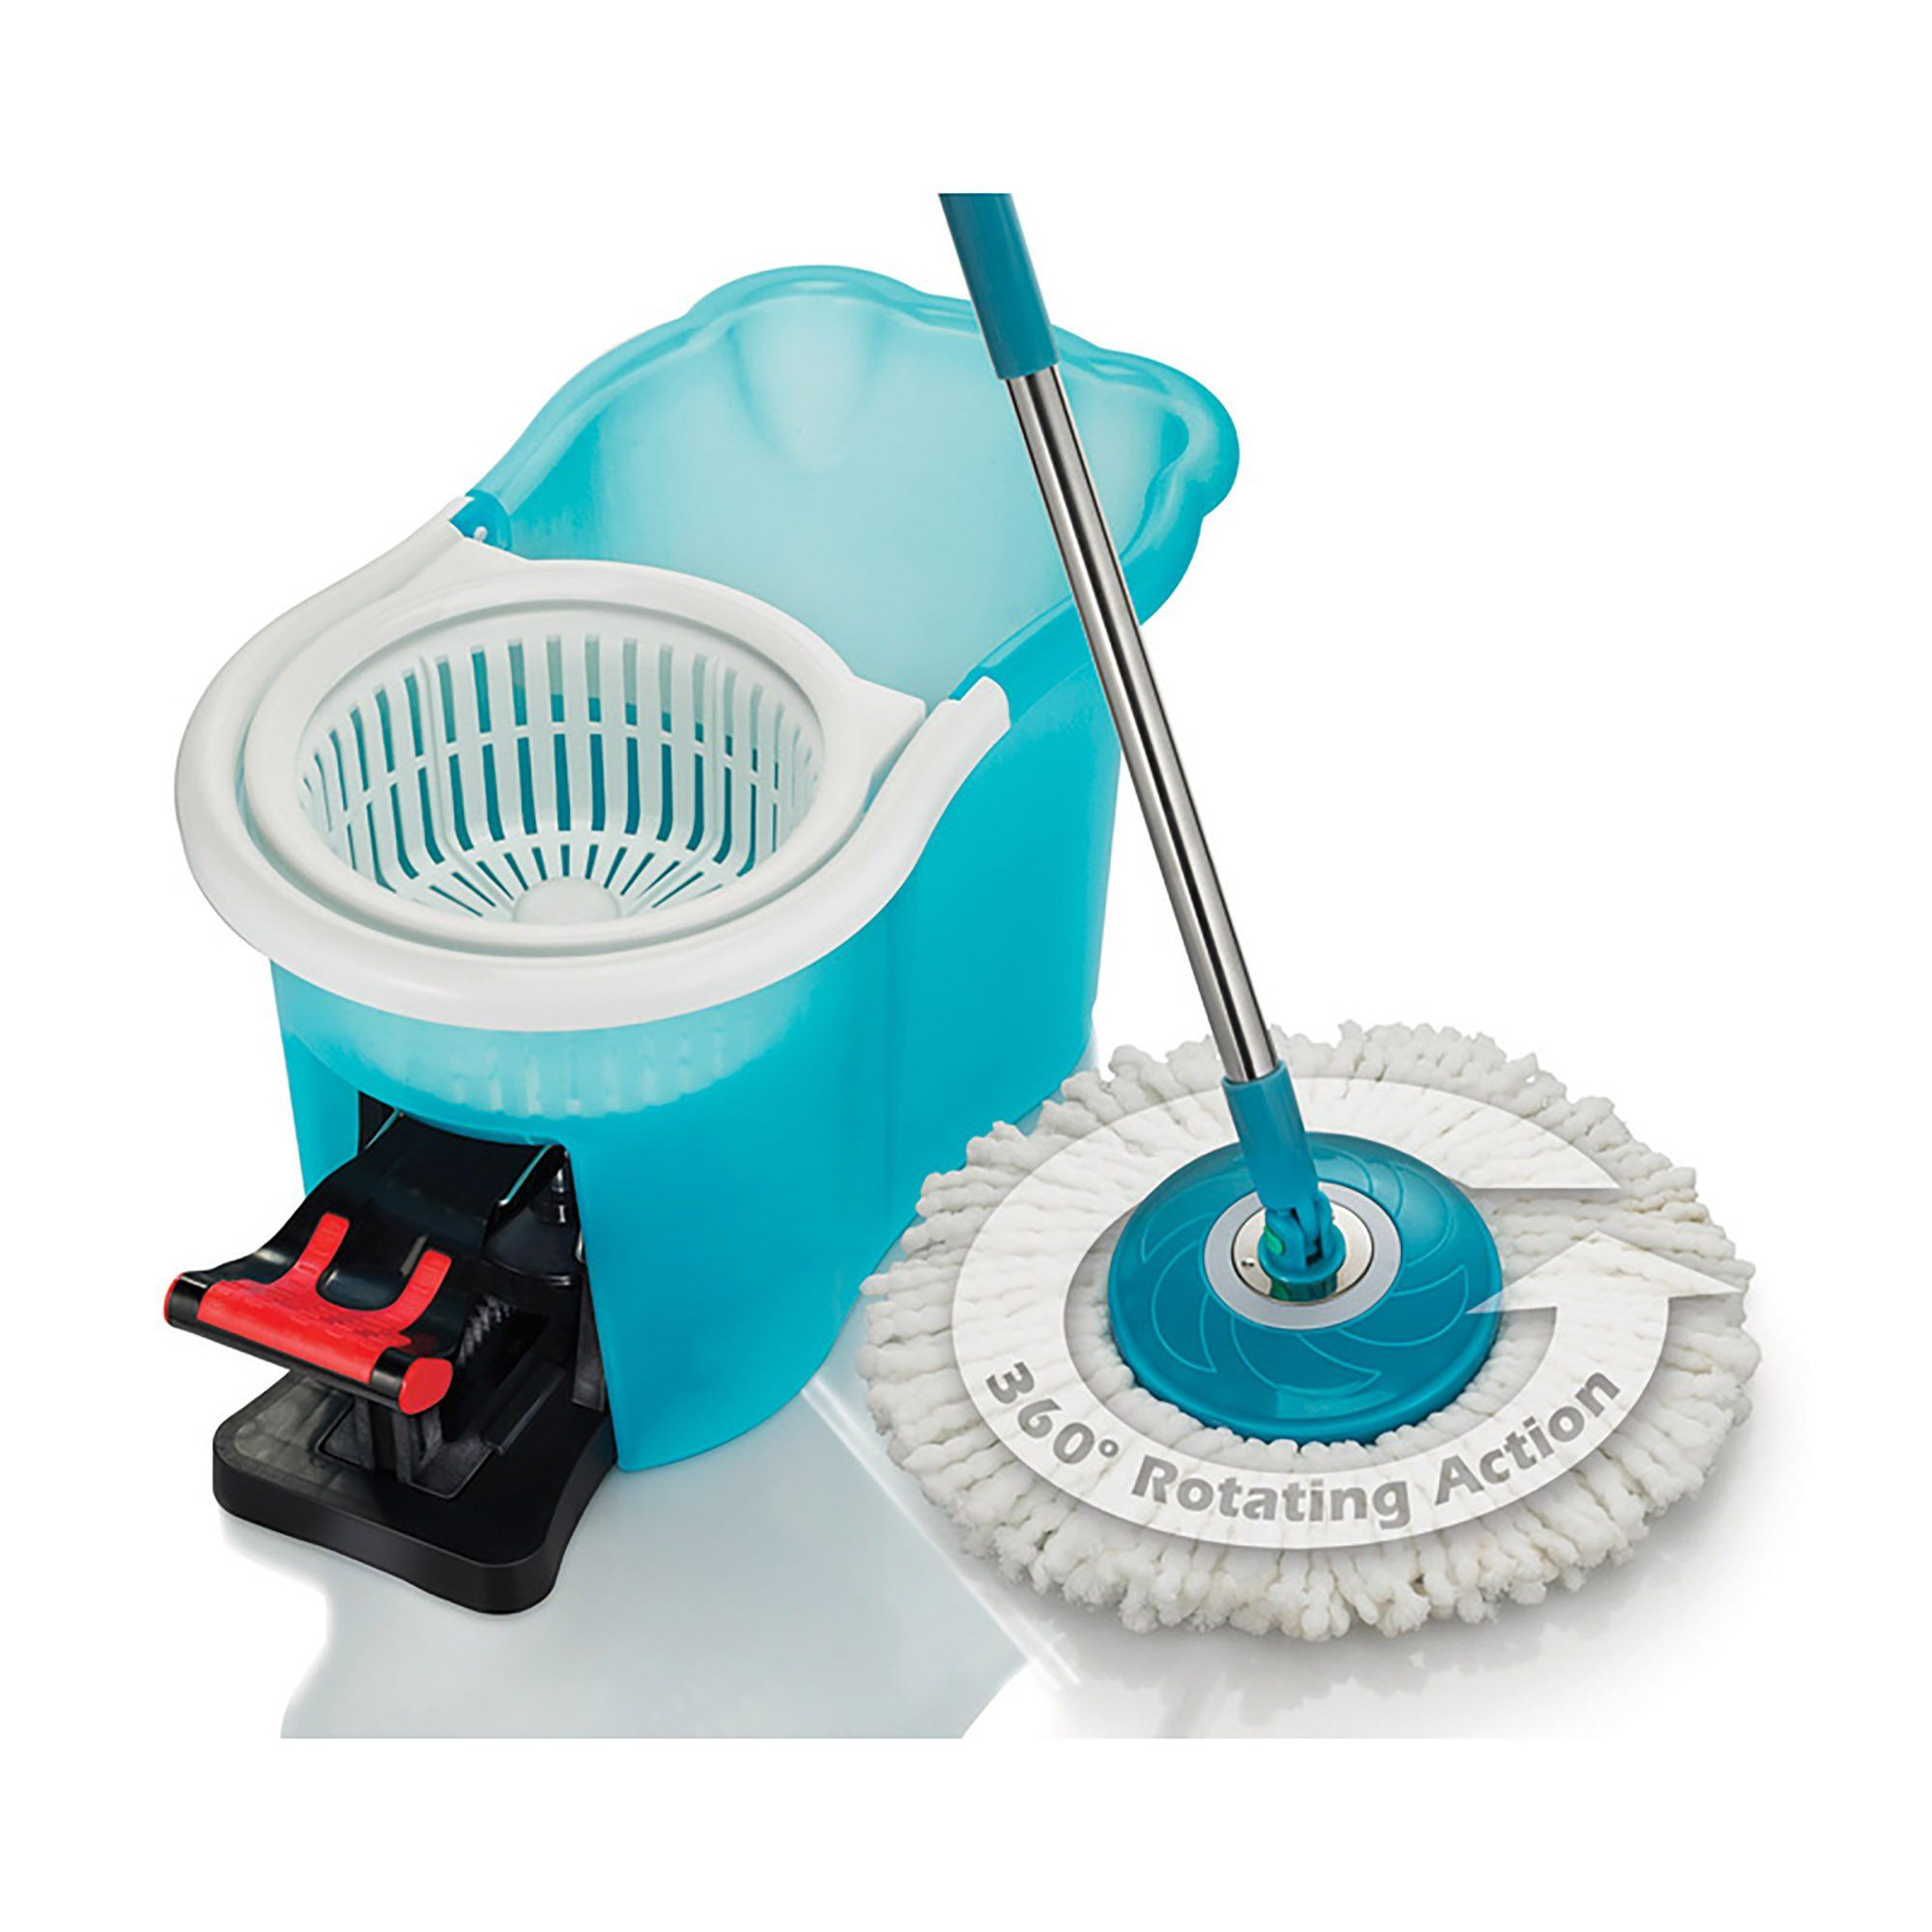 Hurricane Spin Mop Home Cleaning System By Bulbhead Floor Mop With Bucket Hardwood Floor Cleaner For More Information Vis Spin Mop Spin Mops Floor Cleaner